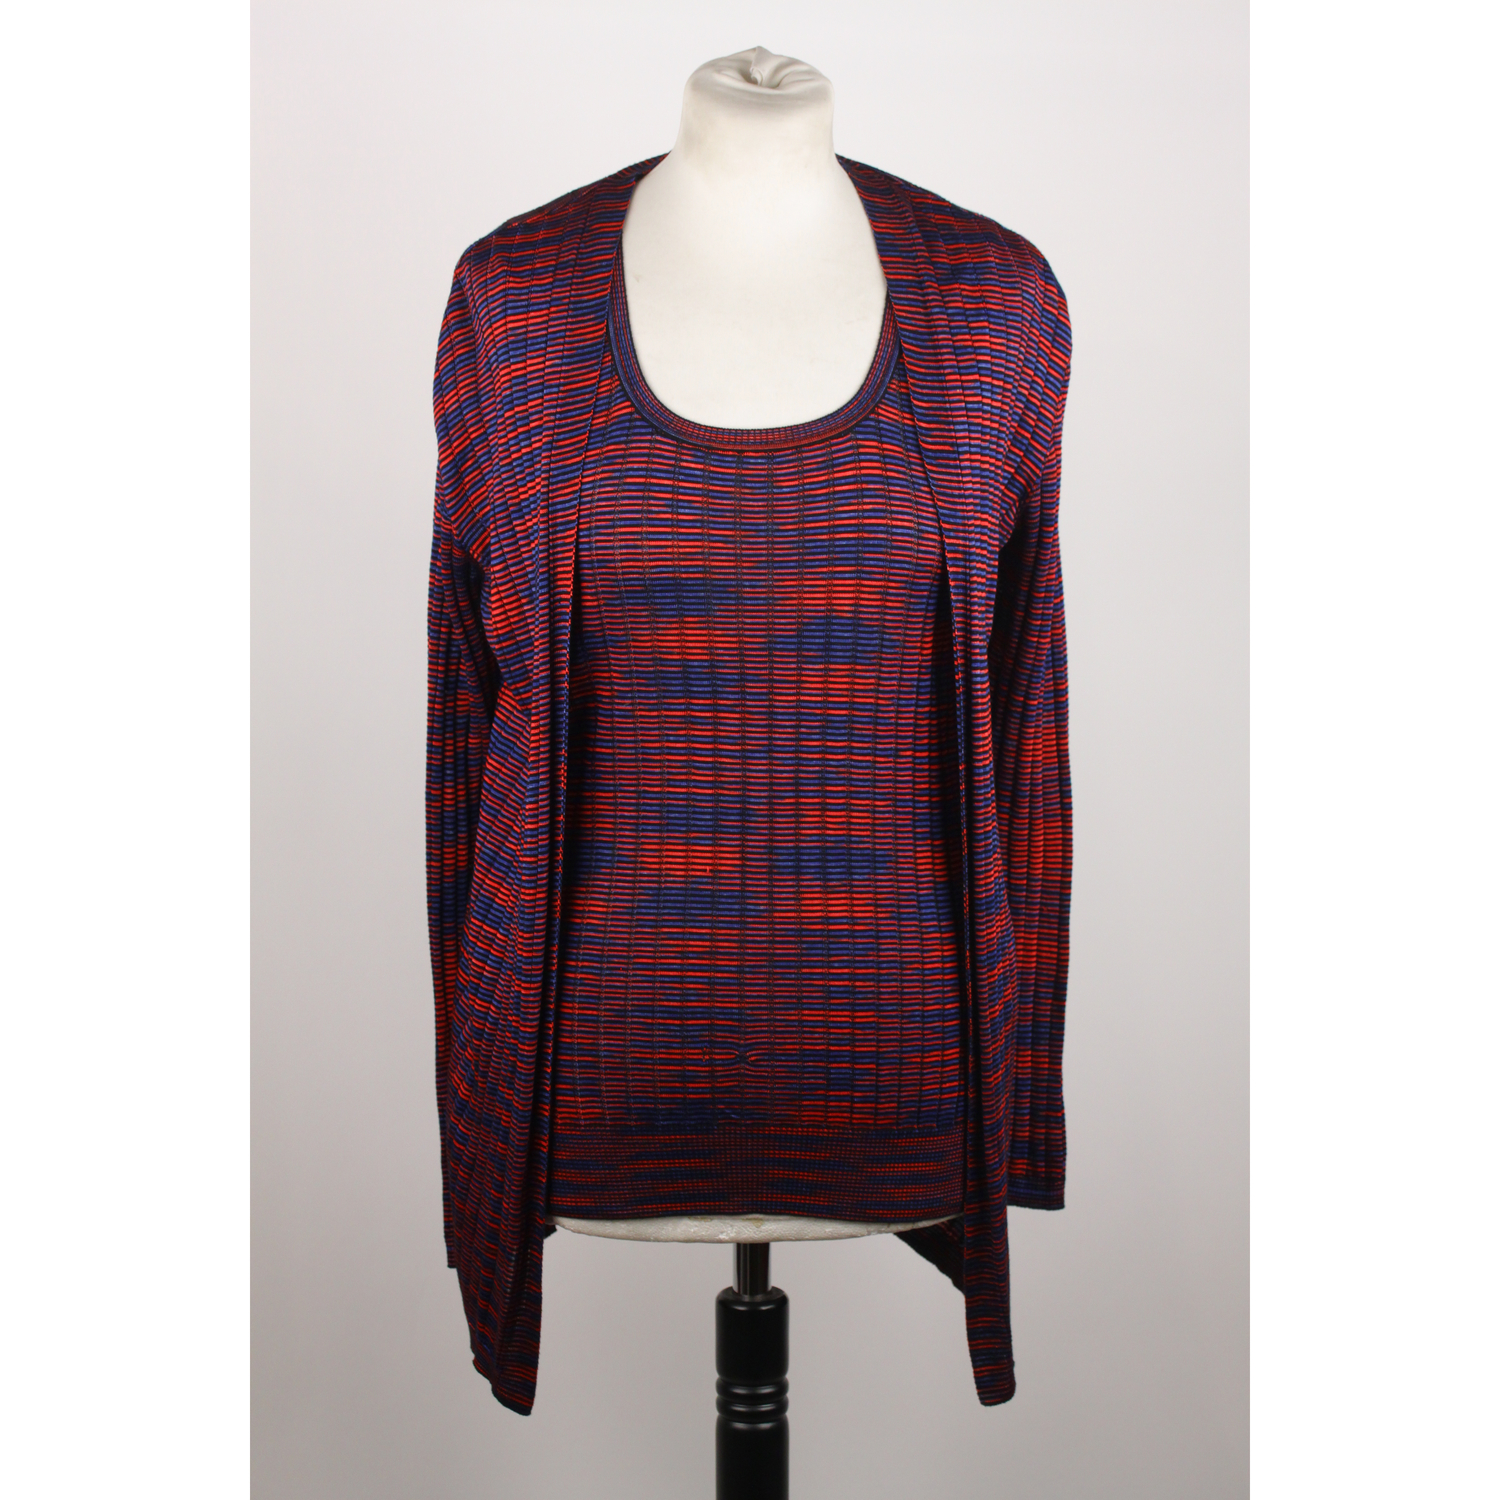 ed0dc22cda02 Details about Authentic M Missoni Blue Red Light Weight Knit Twin Set Vest Cardigan  Size 42